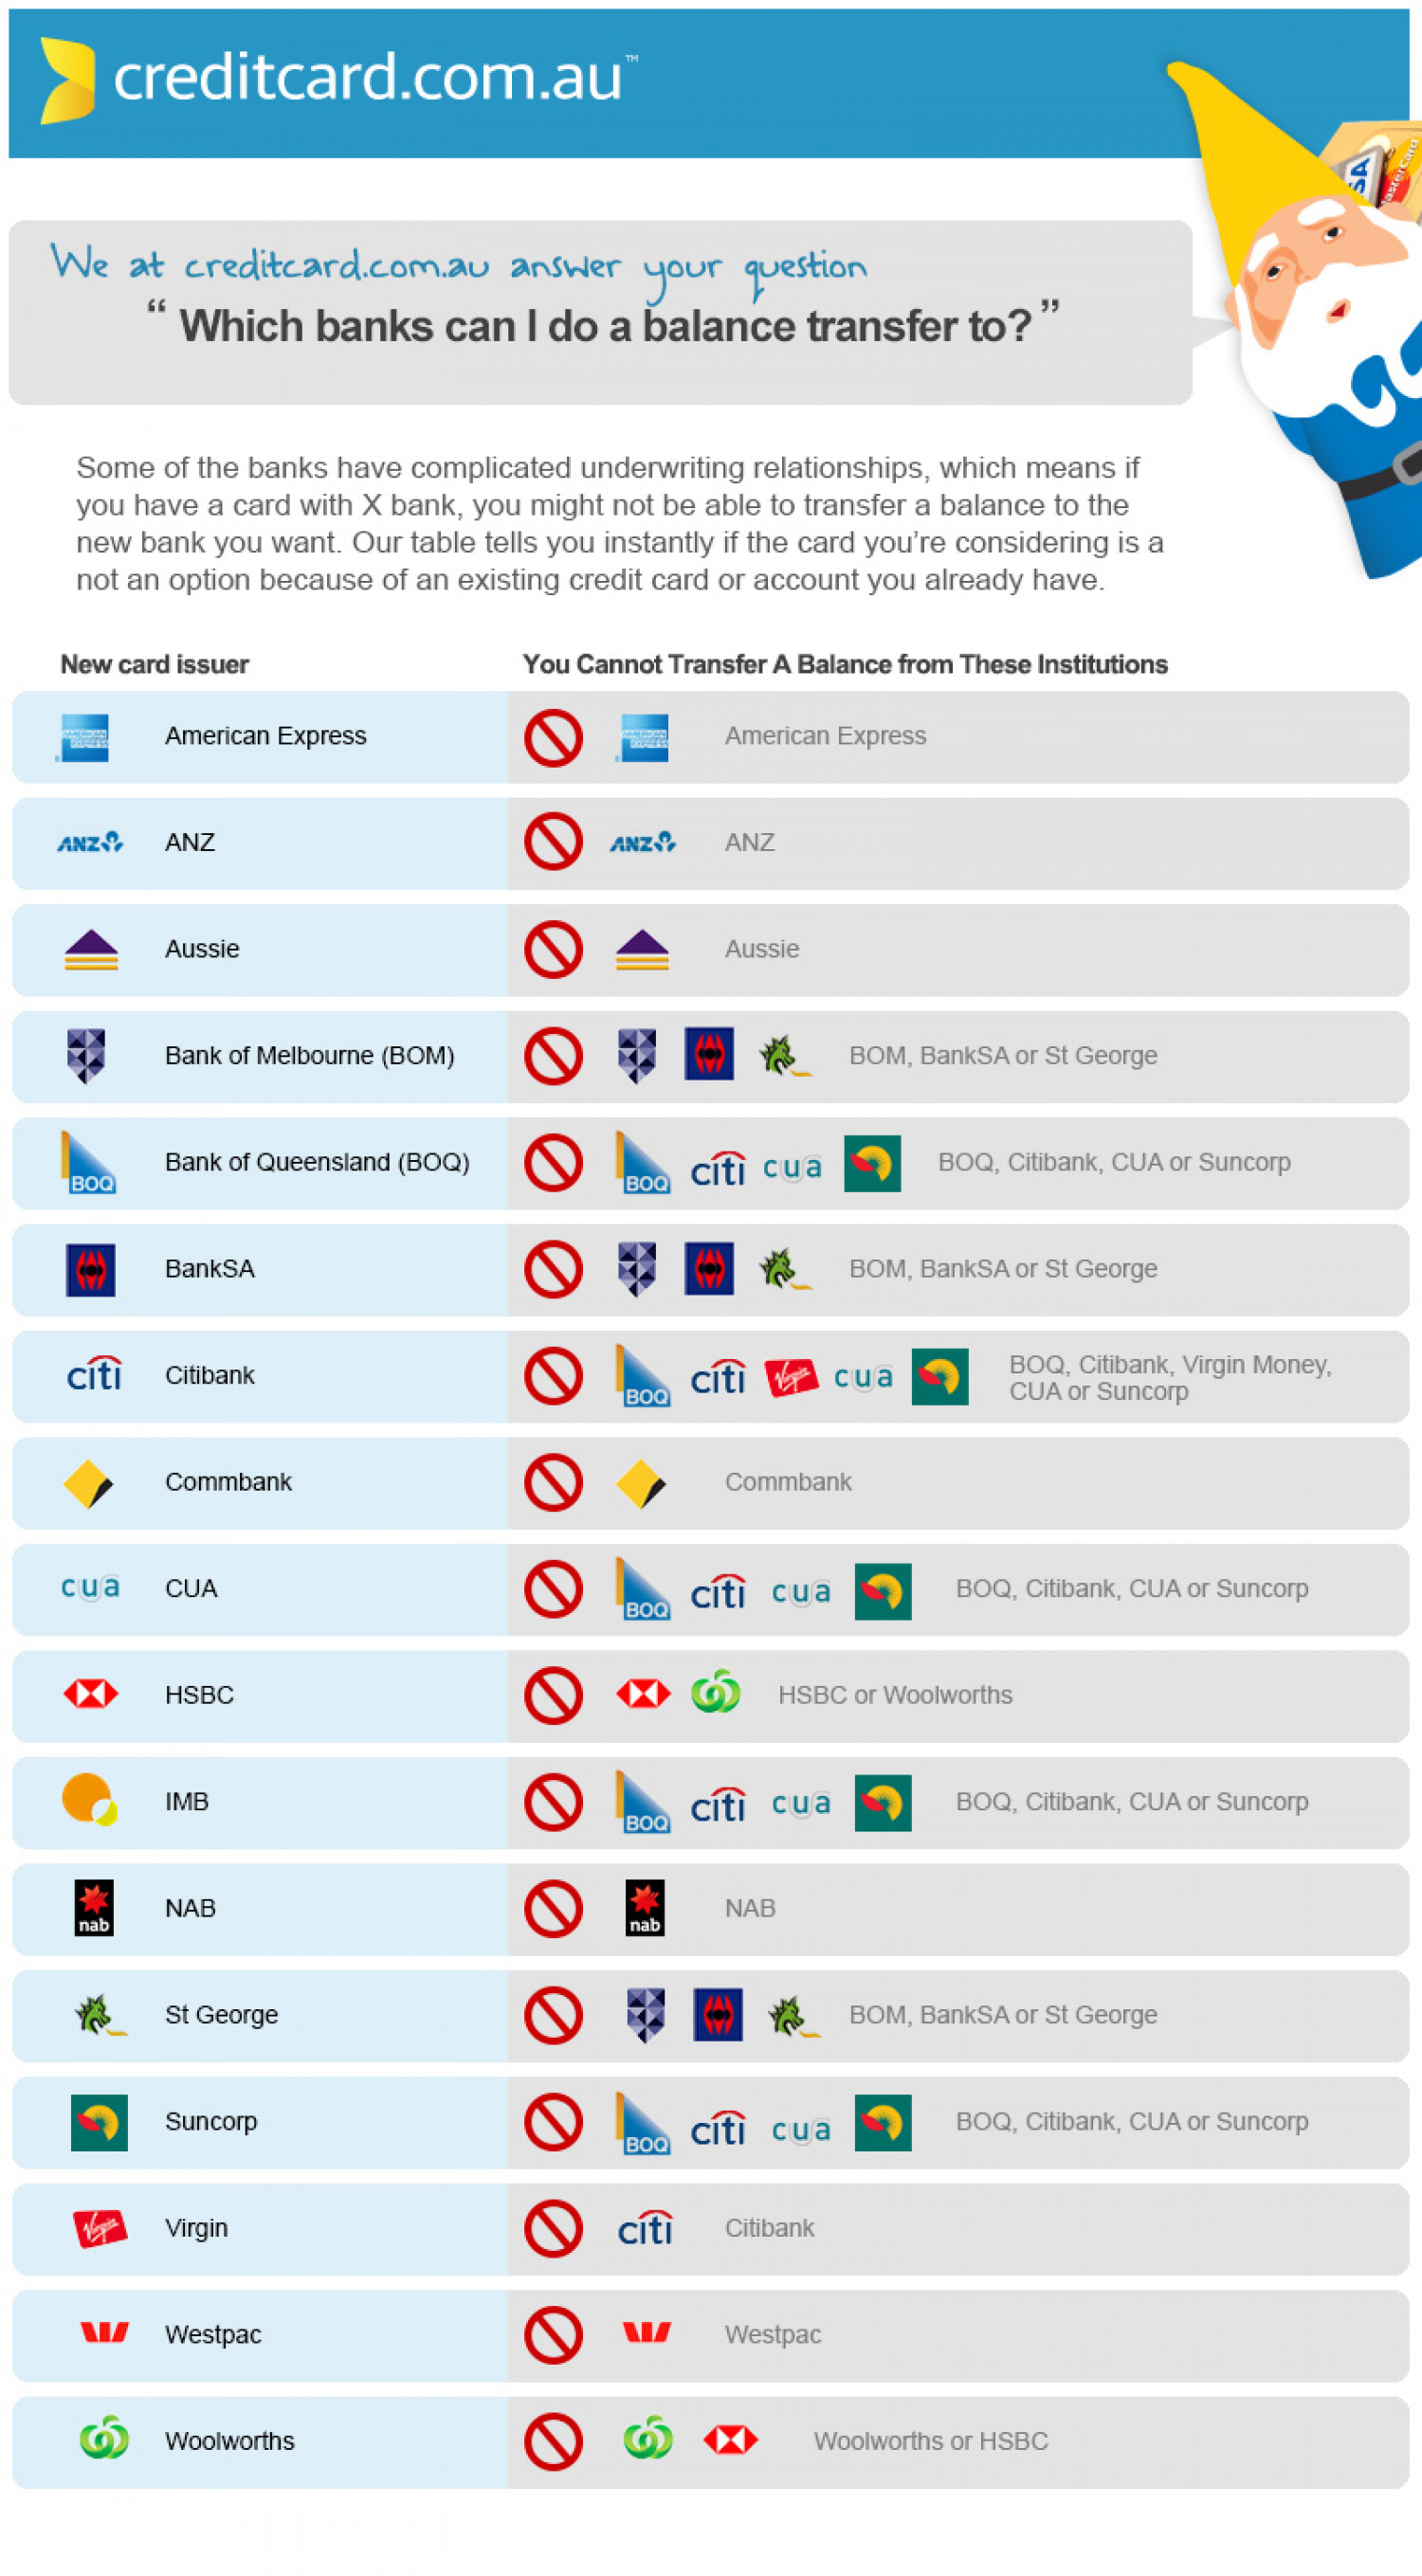 Which banks can I do a balance transfer to? Infographic